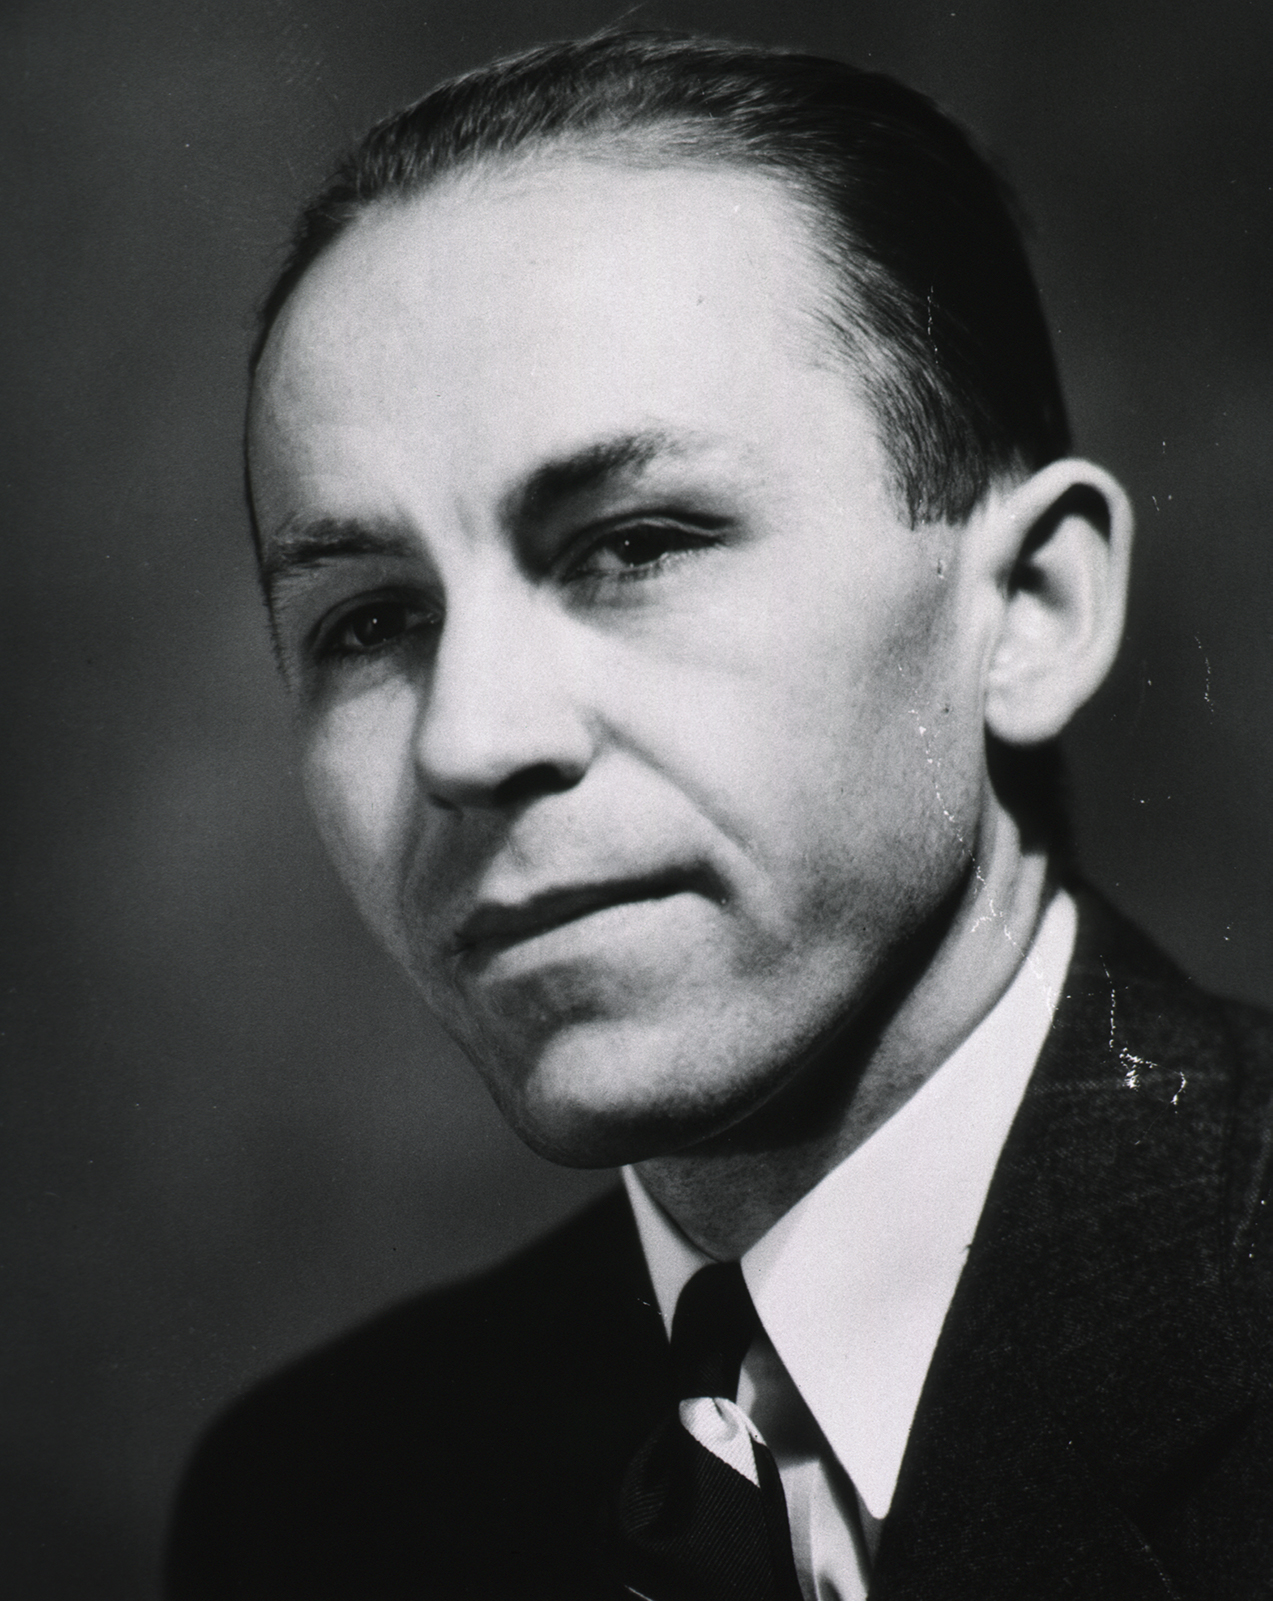 Black and white photo of man in suit